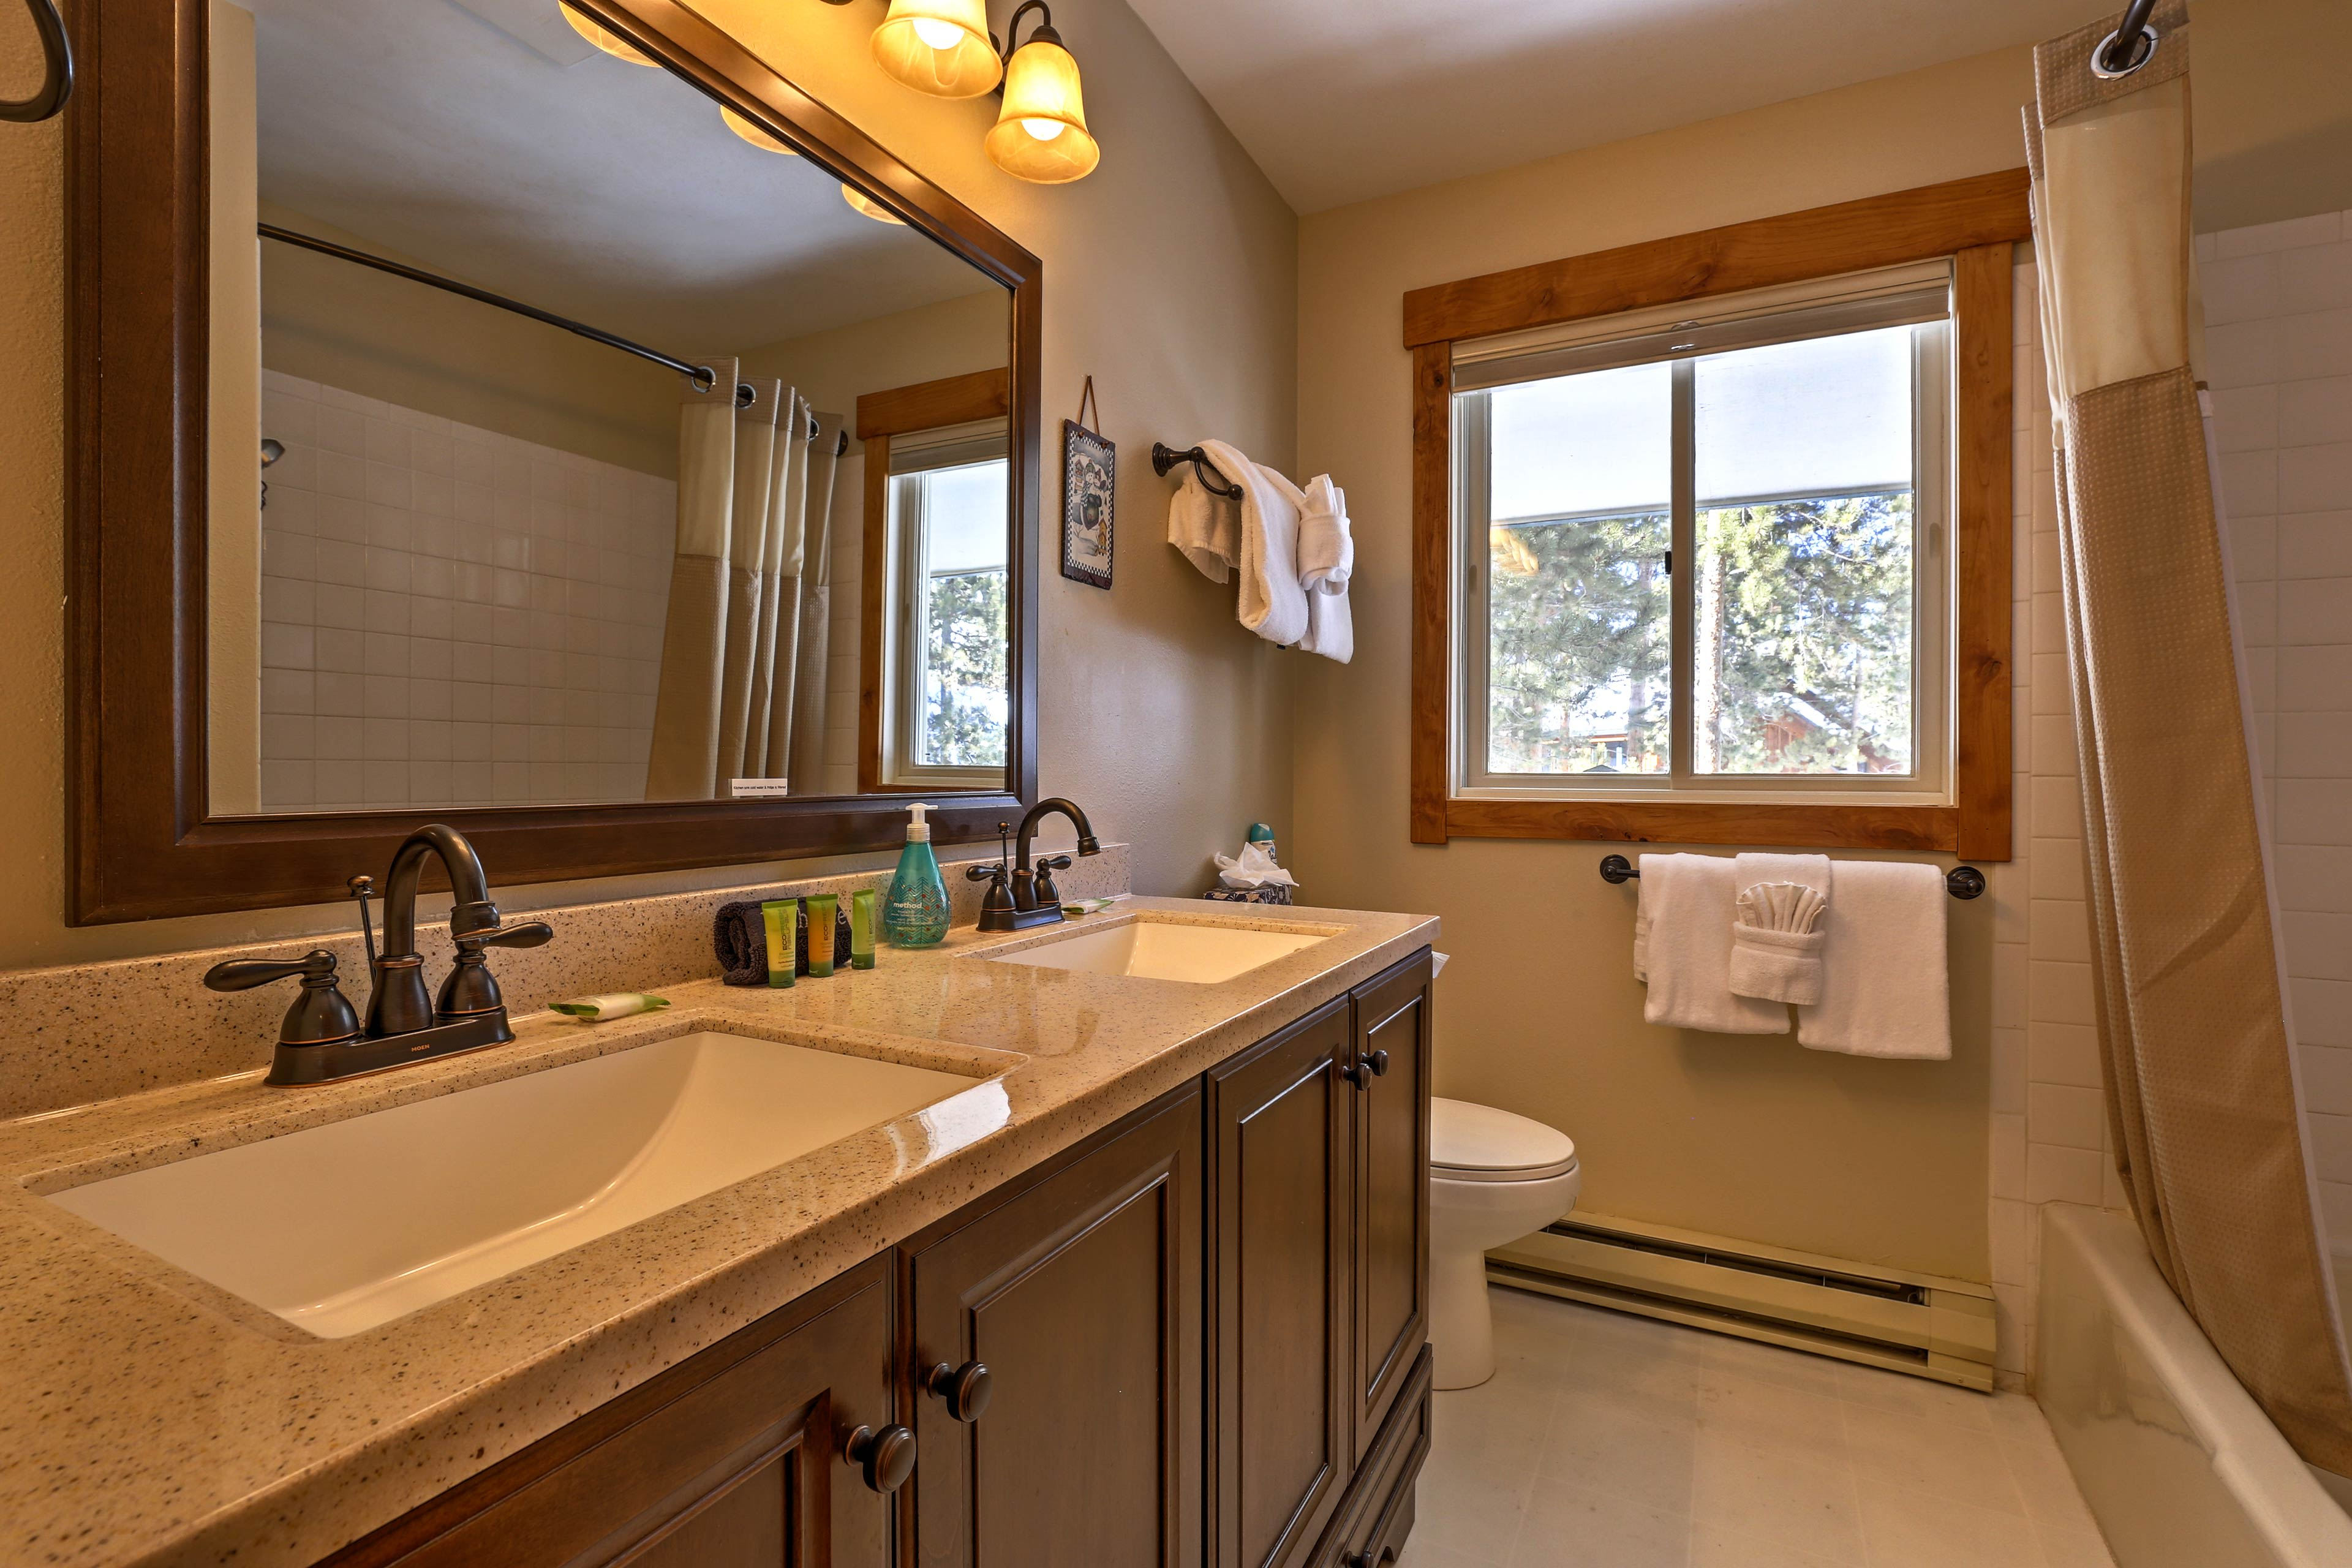 There are 3 full bathrooms featured in this home.